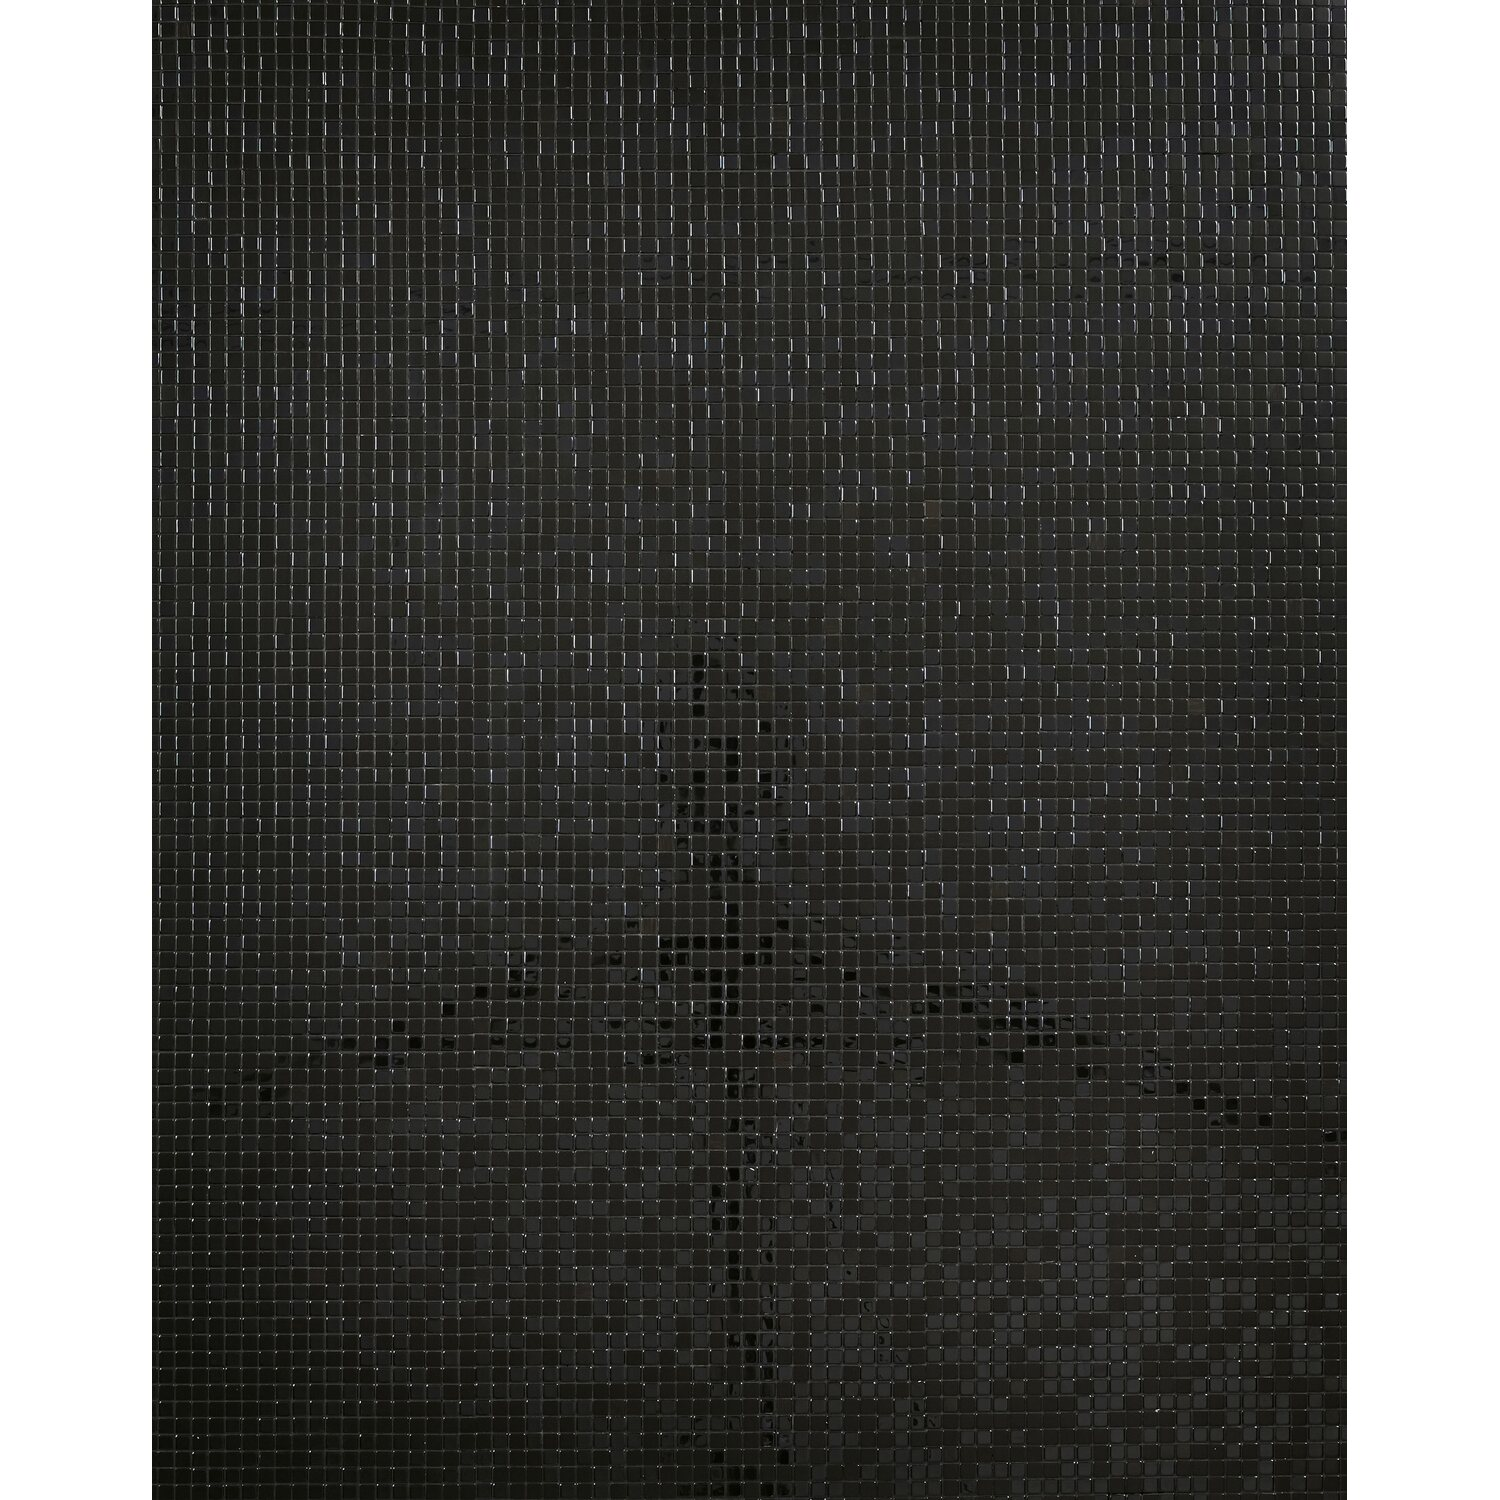 mosaikmatte selbstklebend alu geb rstet schwarz 29 cm x 29 cm kaufen bei obi. Black Bedroom Furniture Sets. Home Design Ideas